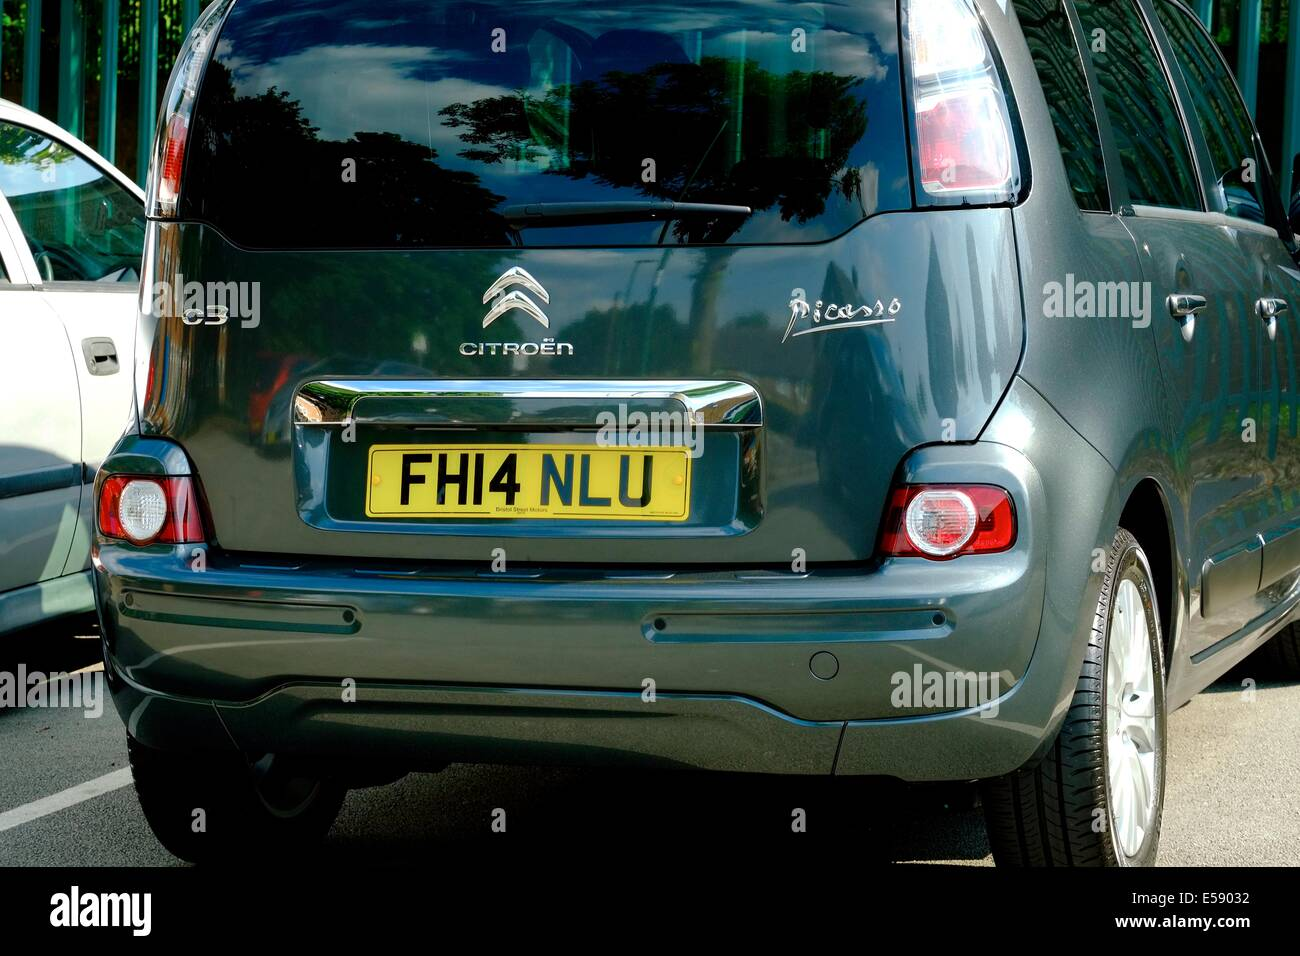 A brand new citroen c3 picasso England uk - Stock Image